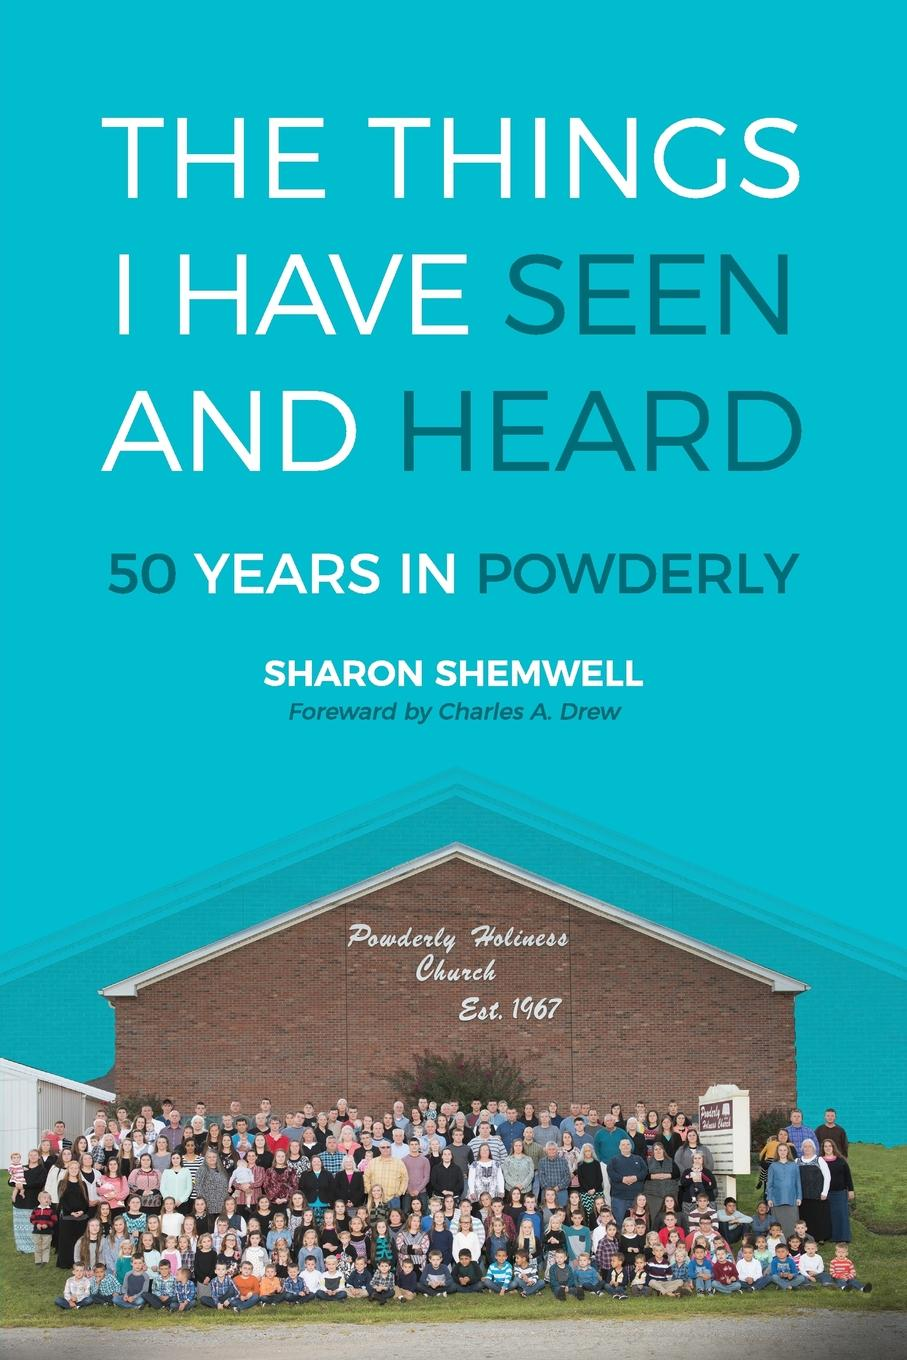 Sharon Shemwell The Things I Have Seen and Heard. 50 Years In Powderly russell young a living witness to god s precious miracles